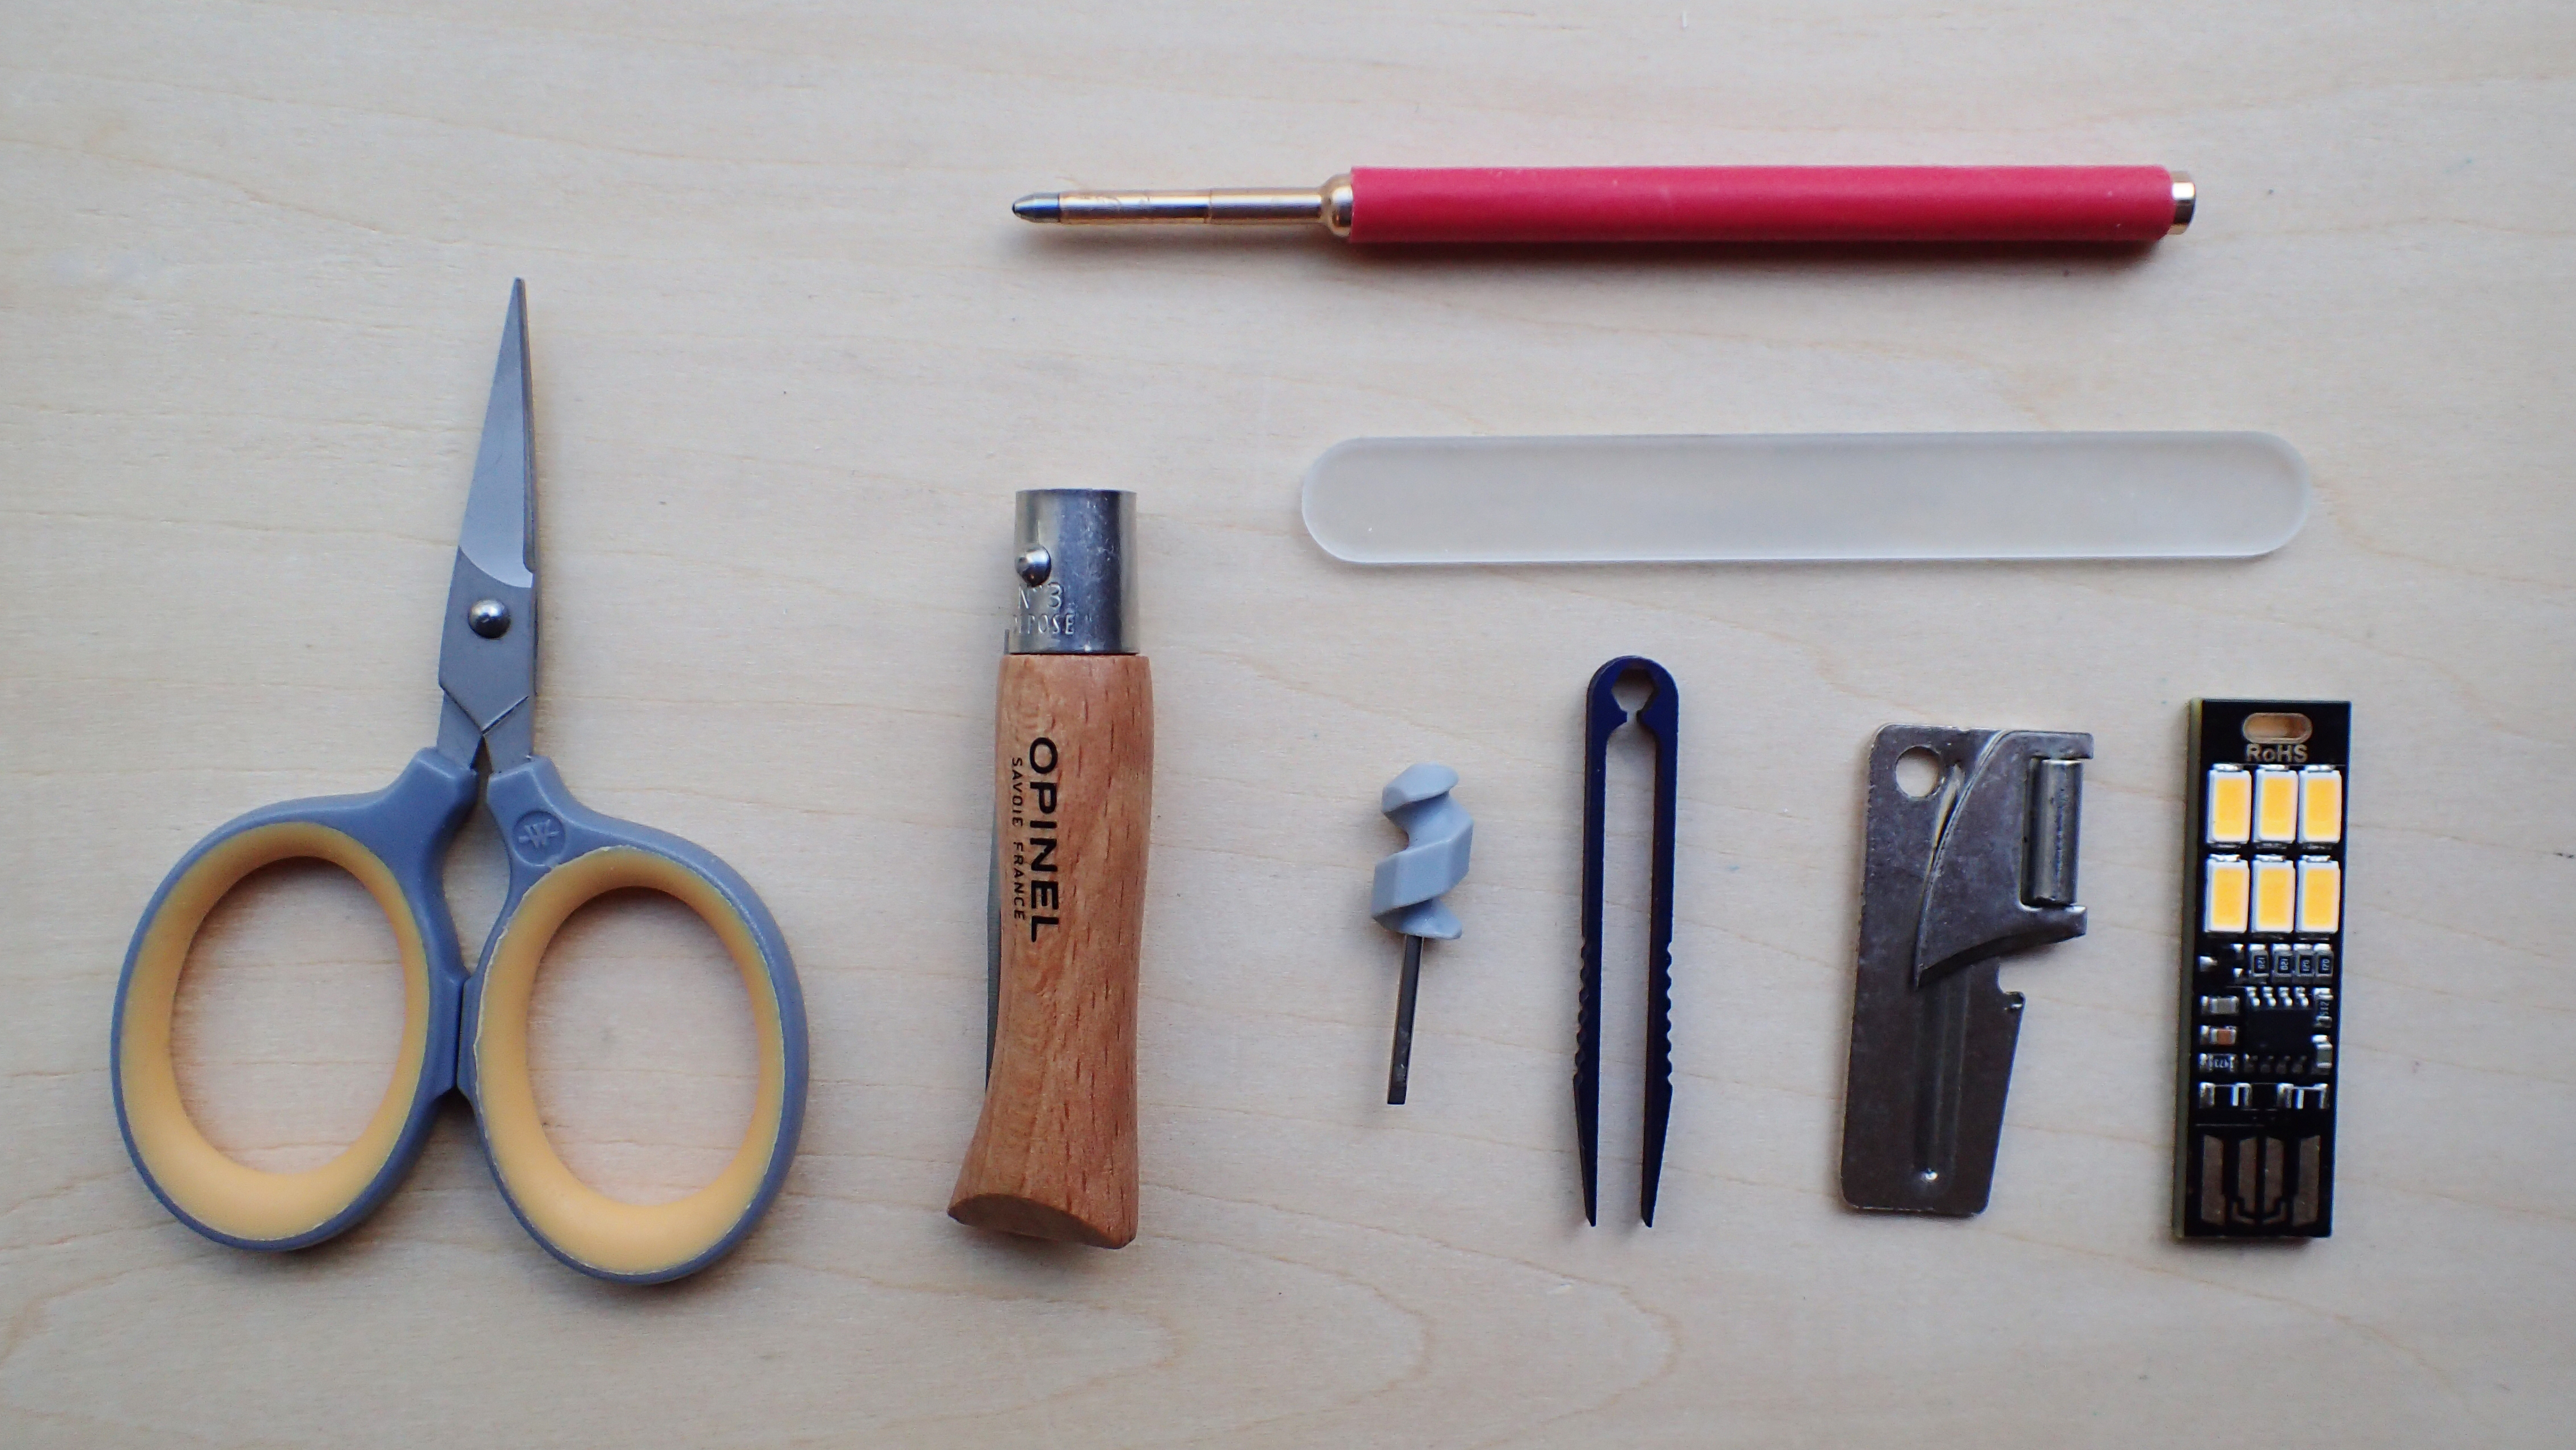 A better, if slightly heavier, selection of lightweight tools